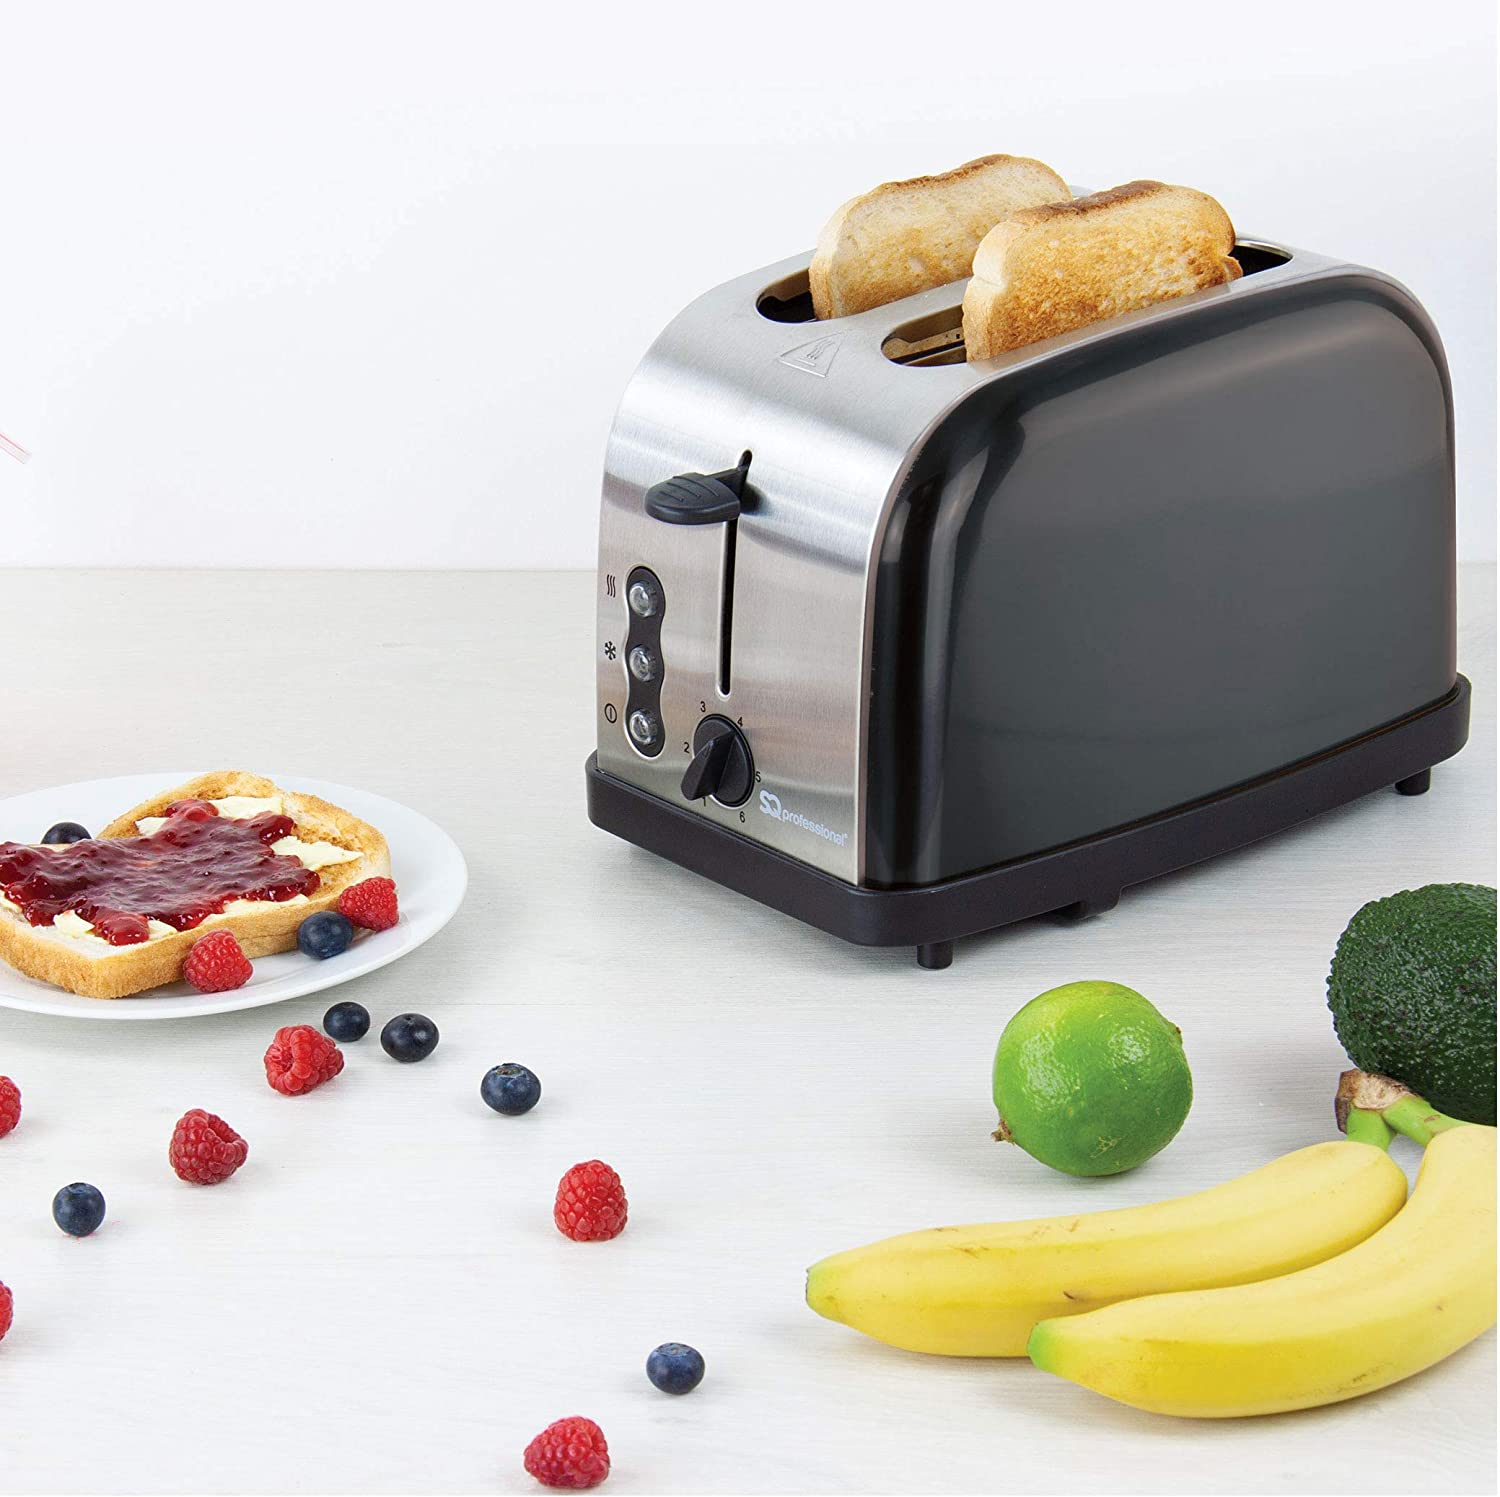 SQ Professional Breakfast Set 2pc Kettle 2200W & 2 Slice Toaster 900W (Dainty Chantilly Beige) Gems Onyx Black